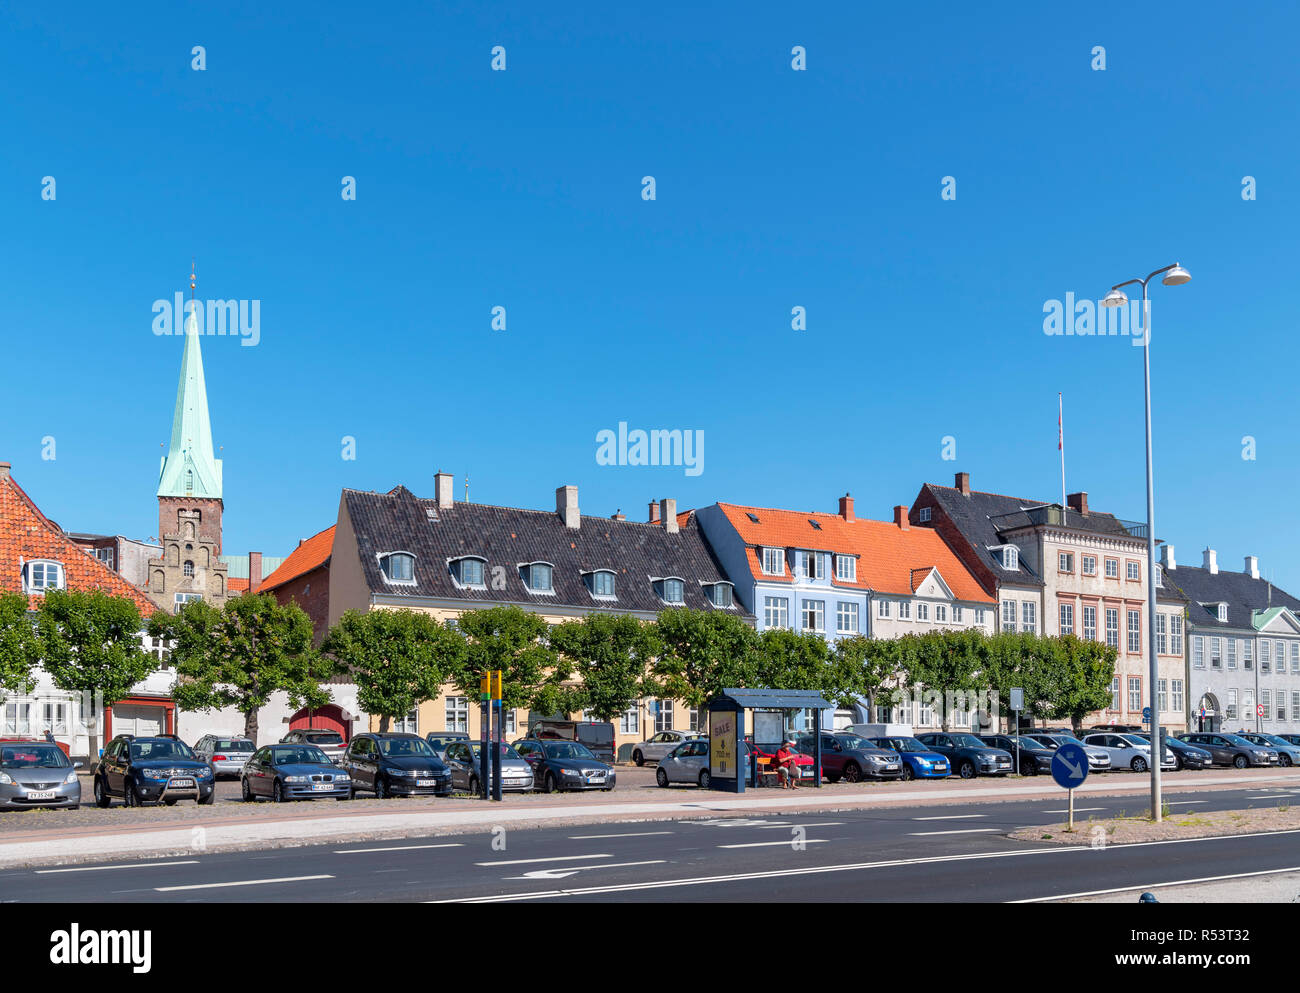 Seafront buildings along Strandgade in the old town centre, Helsingør ( Elsinore ), Zealand, Denmark Stock Photo